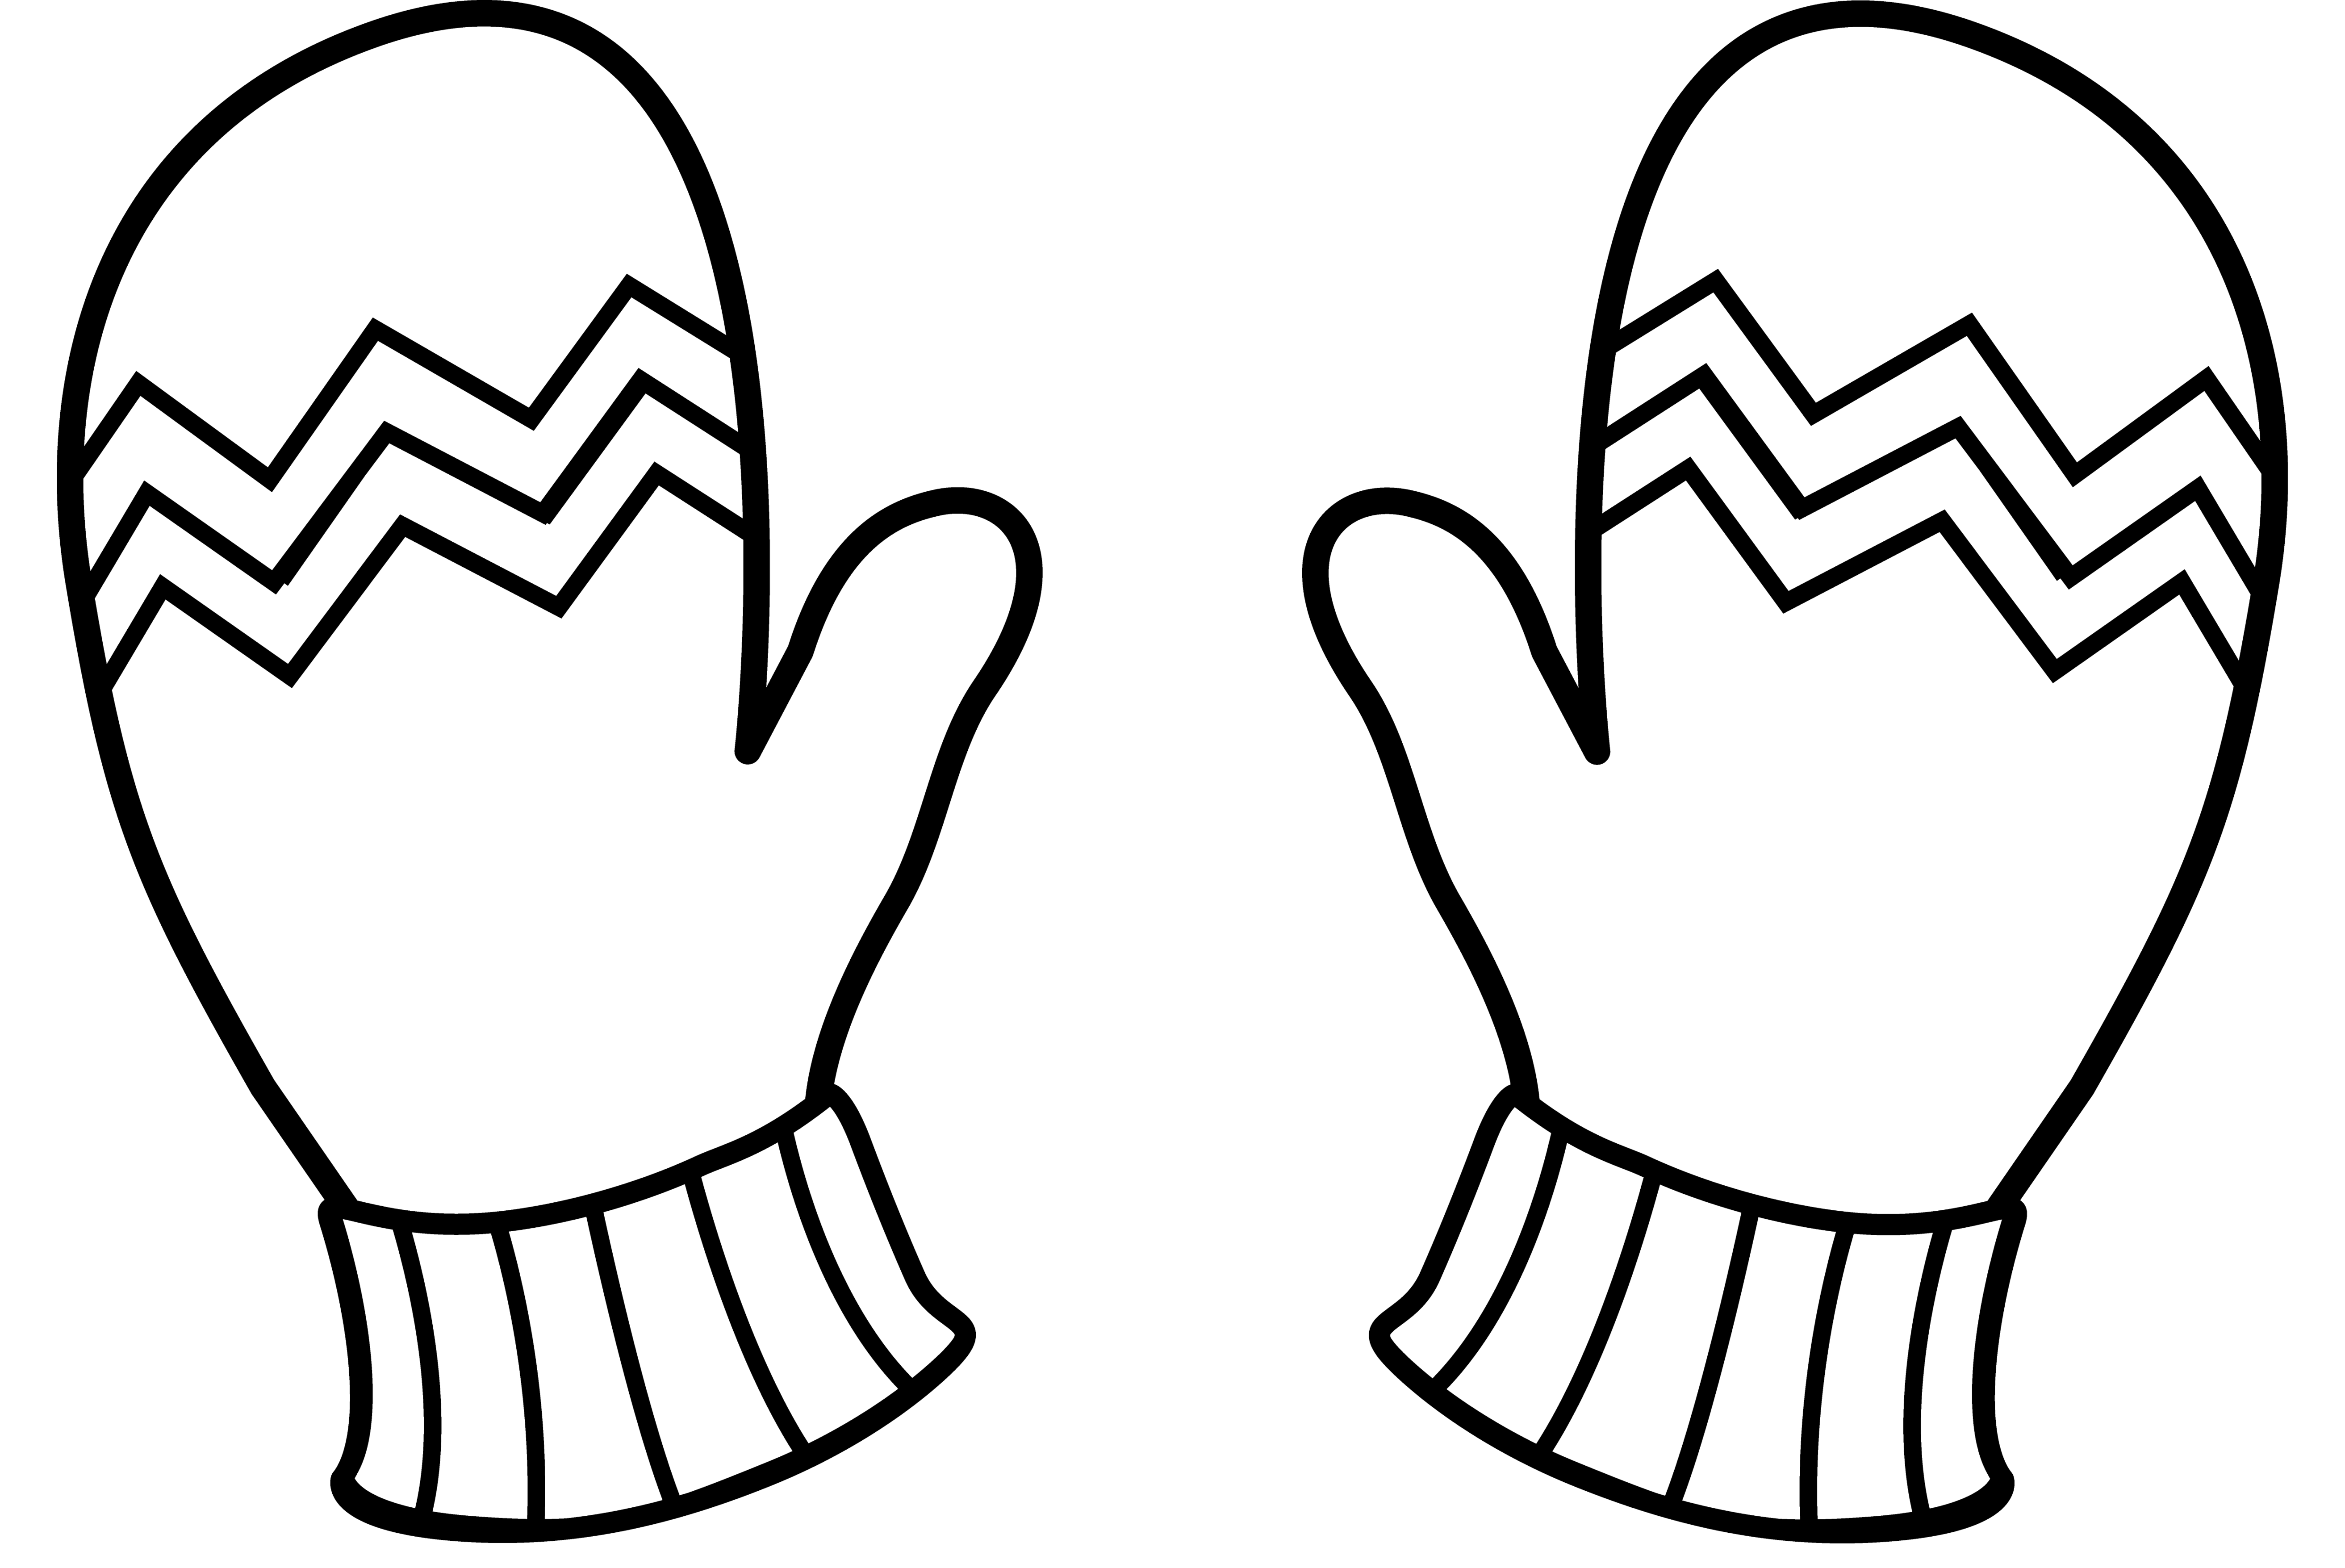 Glove clipart outline.